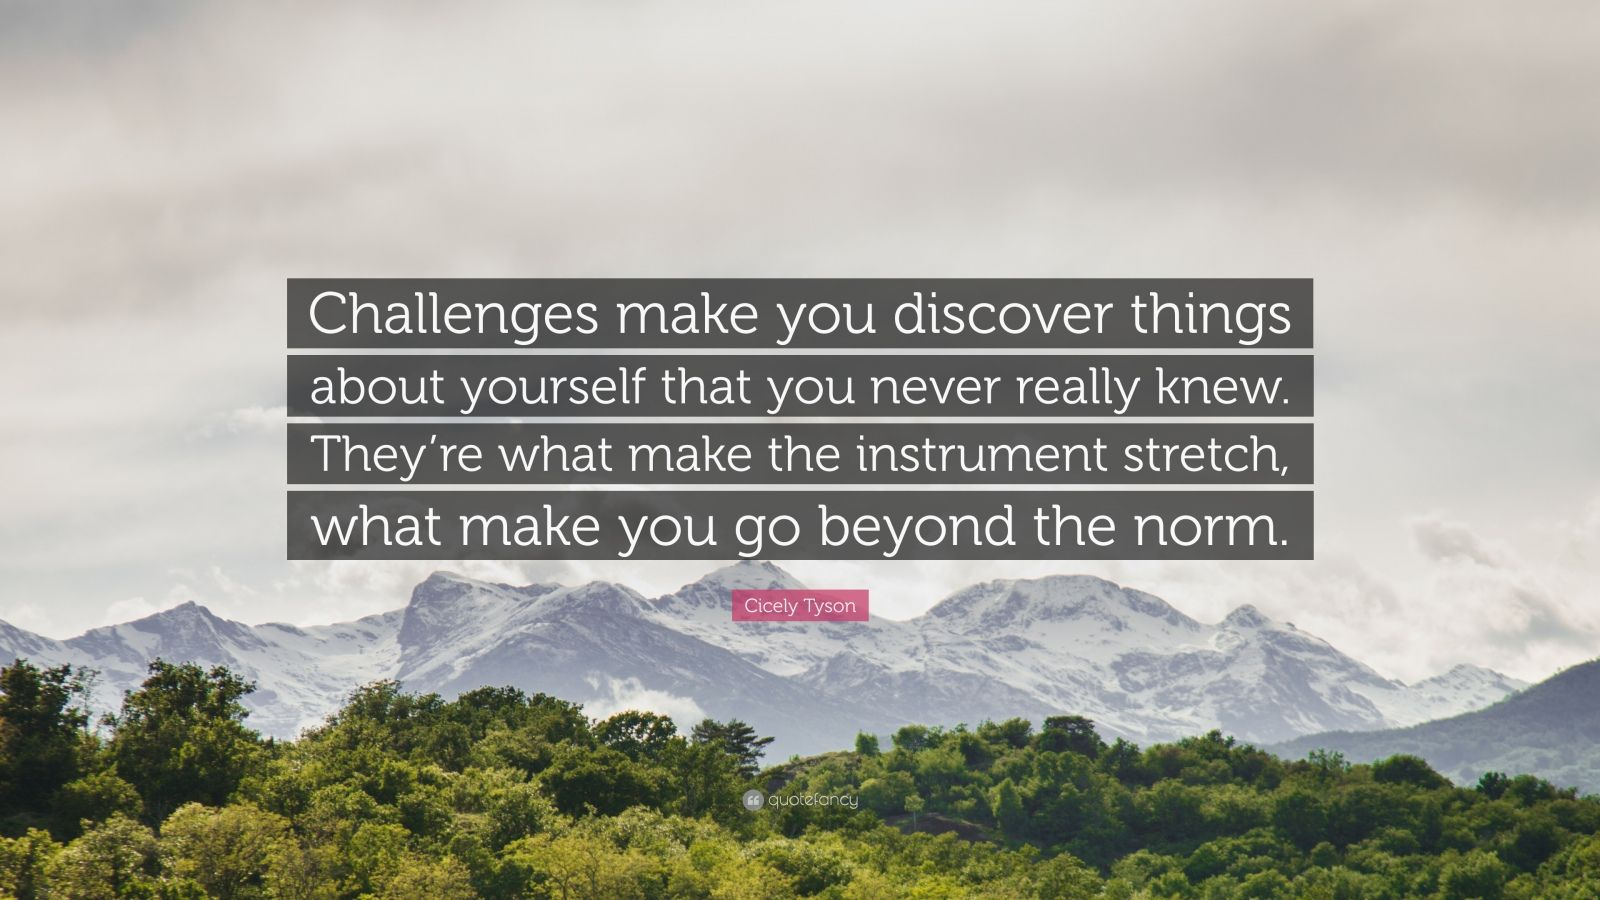 """Cicely Tyson Quote: """"Challenges make you discover things about yourself that you never really knew. They're what make the instrument stretch, what make you go beyond the norm."""""""